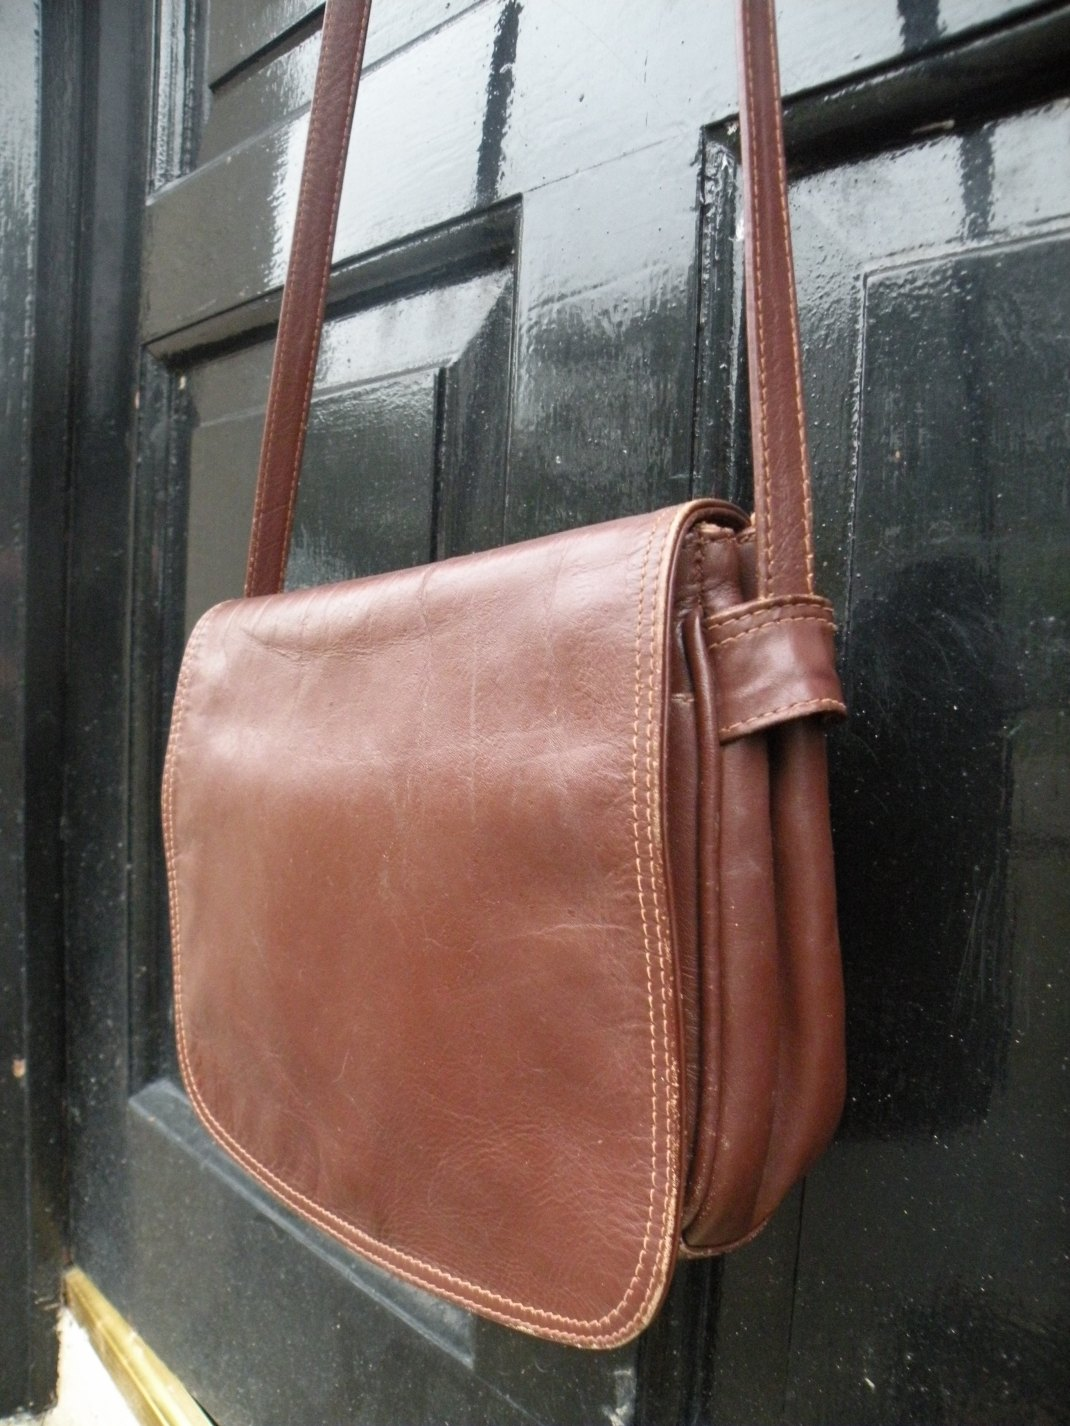 chosen-handbag-on-door